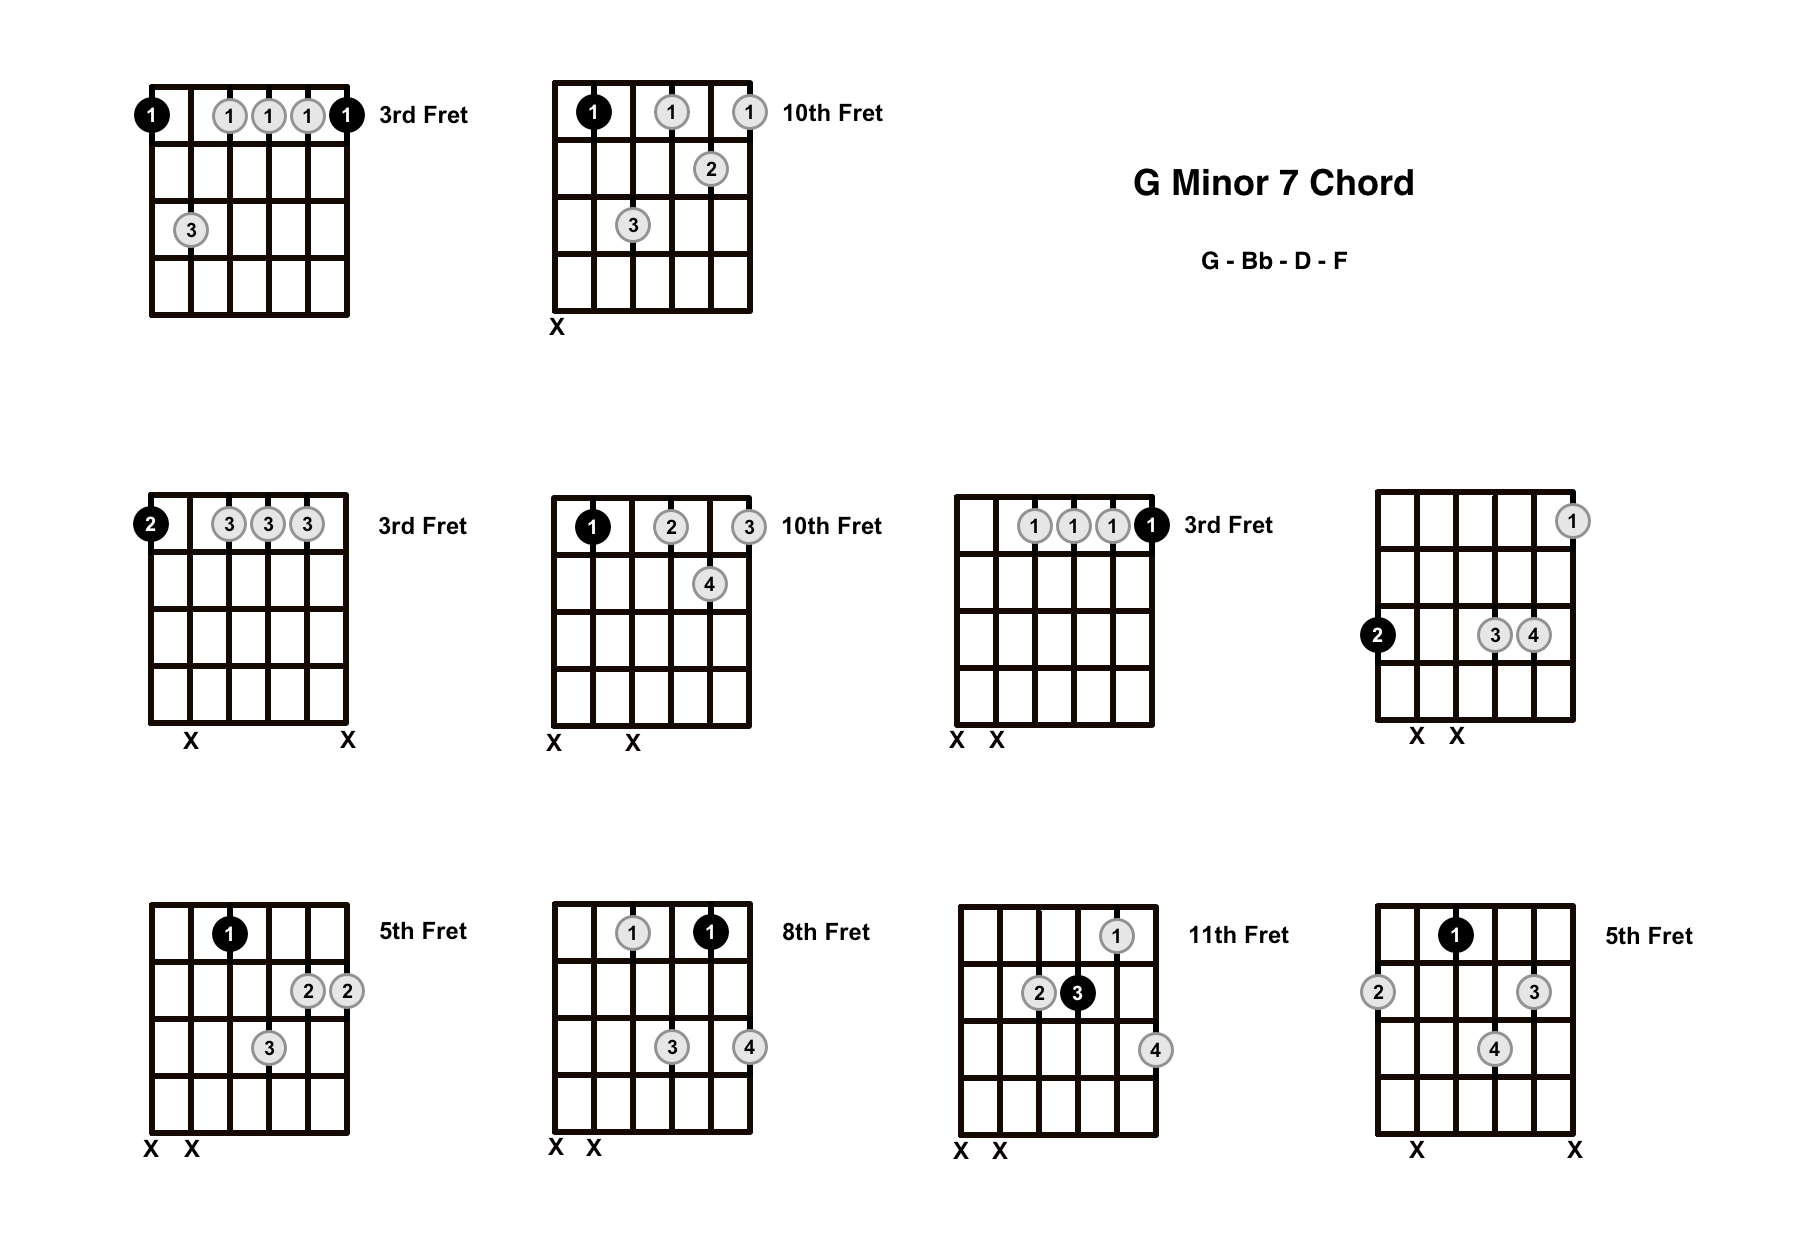 Gm7 Chord on the Guitar (G Minor 7) – Diagrams, Finger Positions, Theory